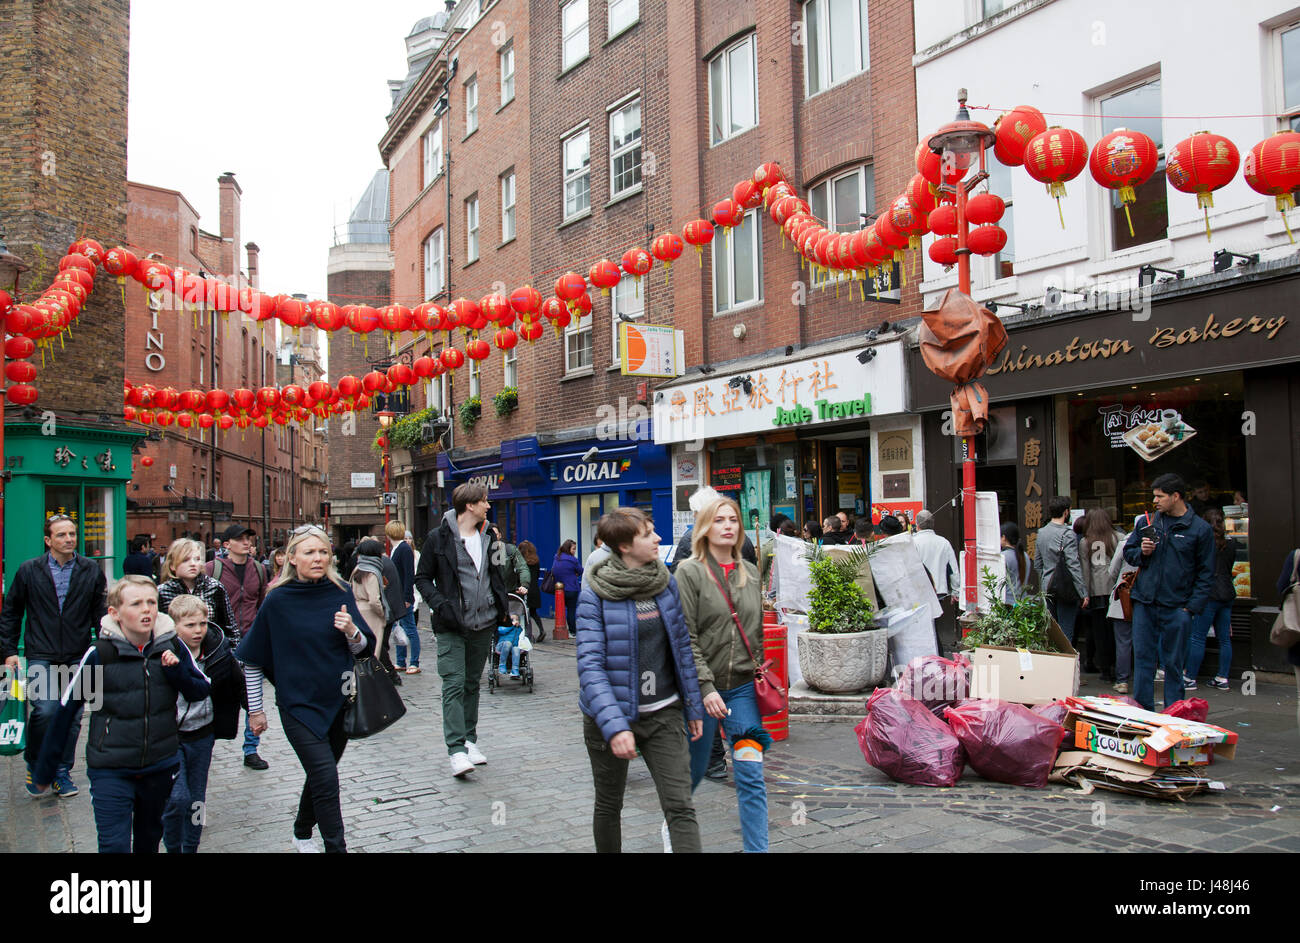 Looking at Chinatown down Newport PL in London UK - Stock Image